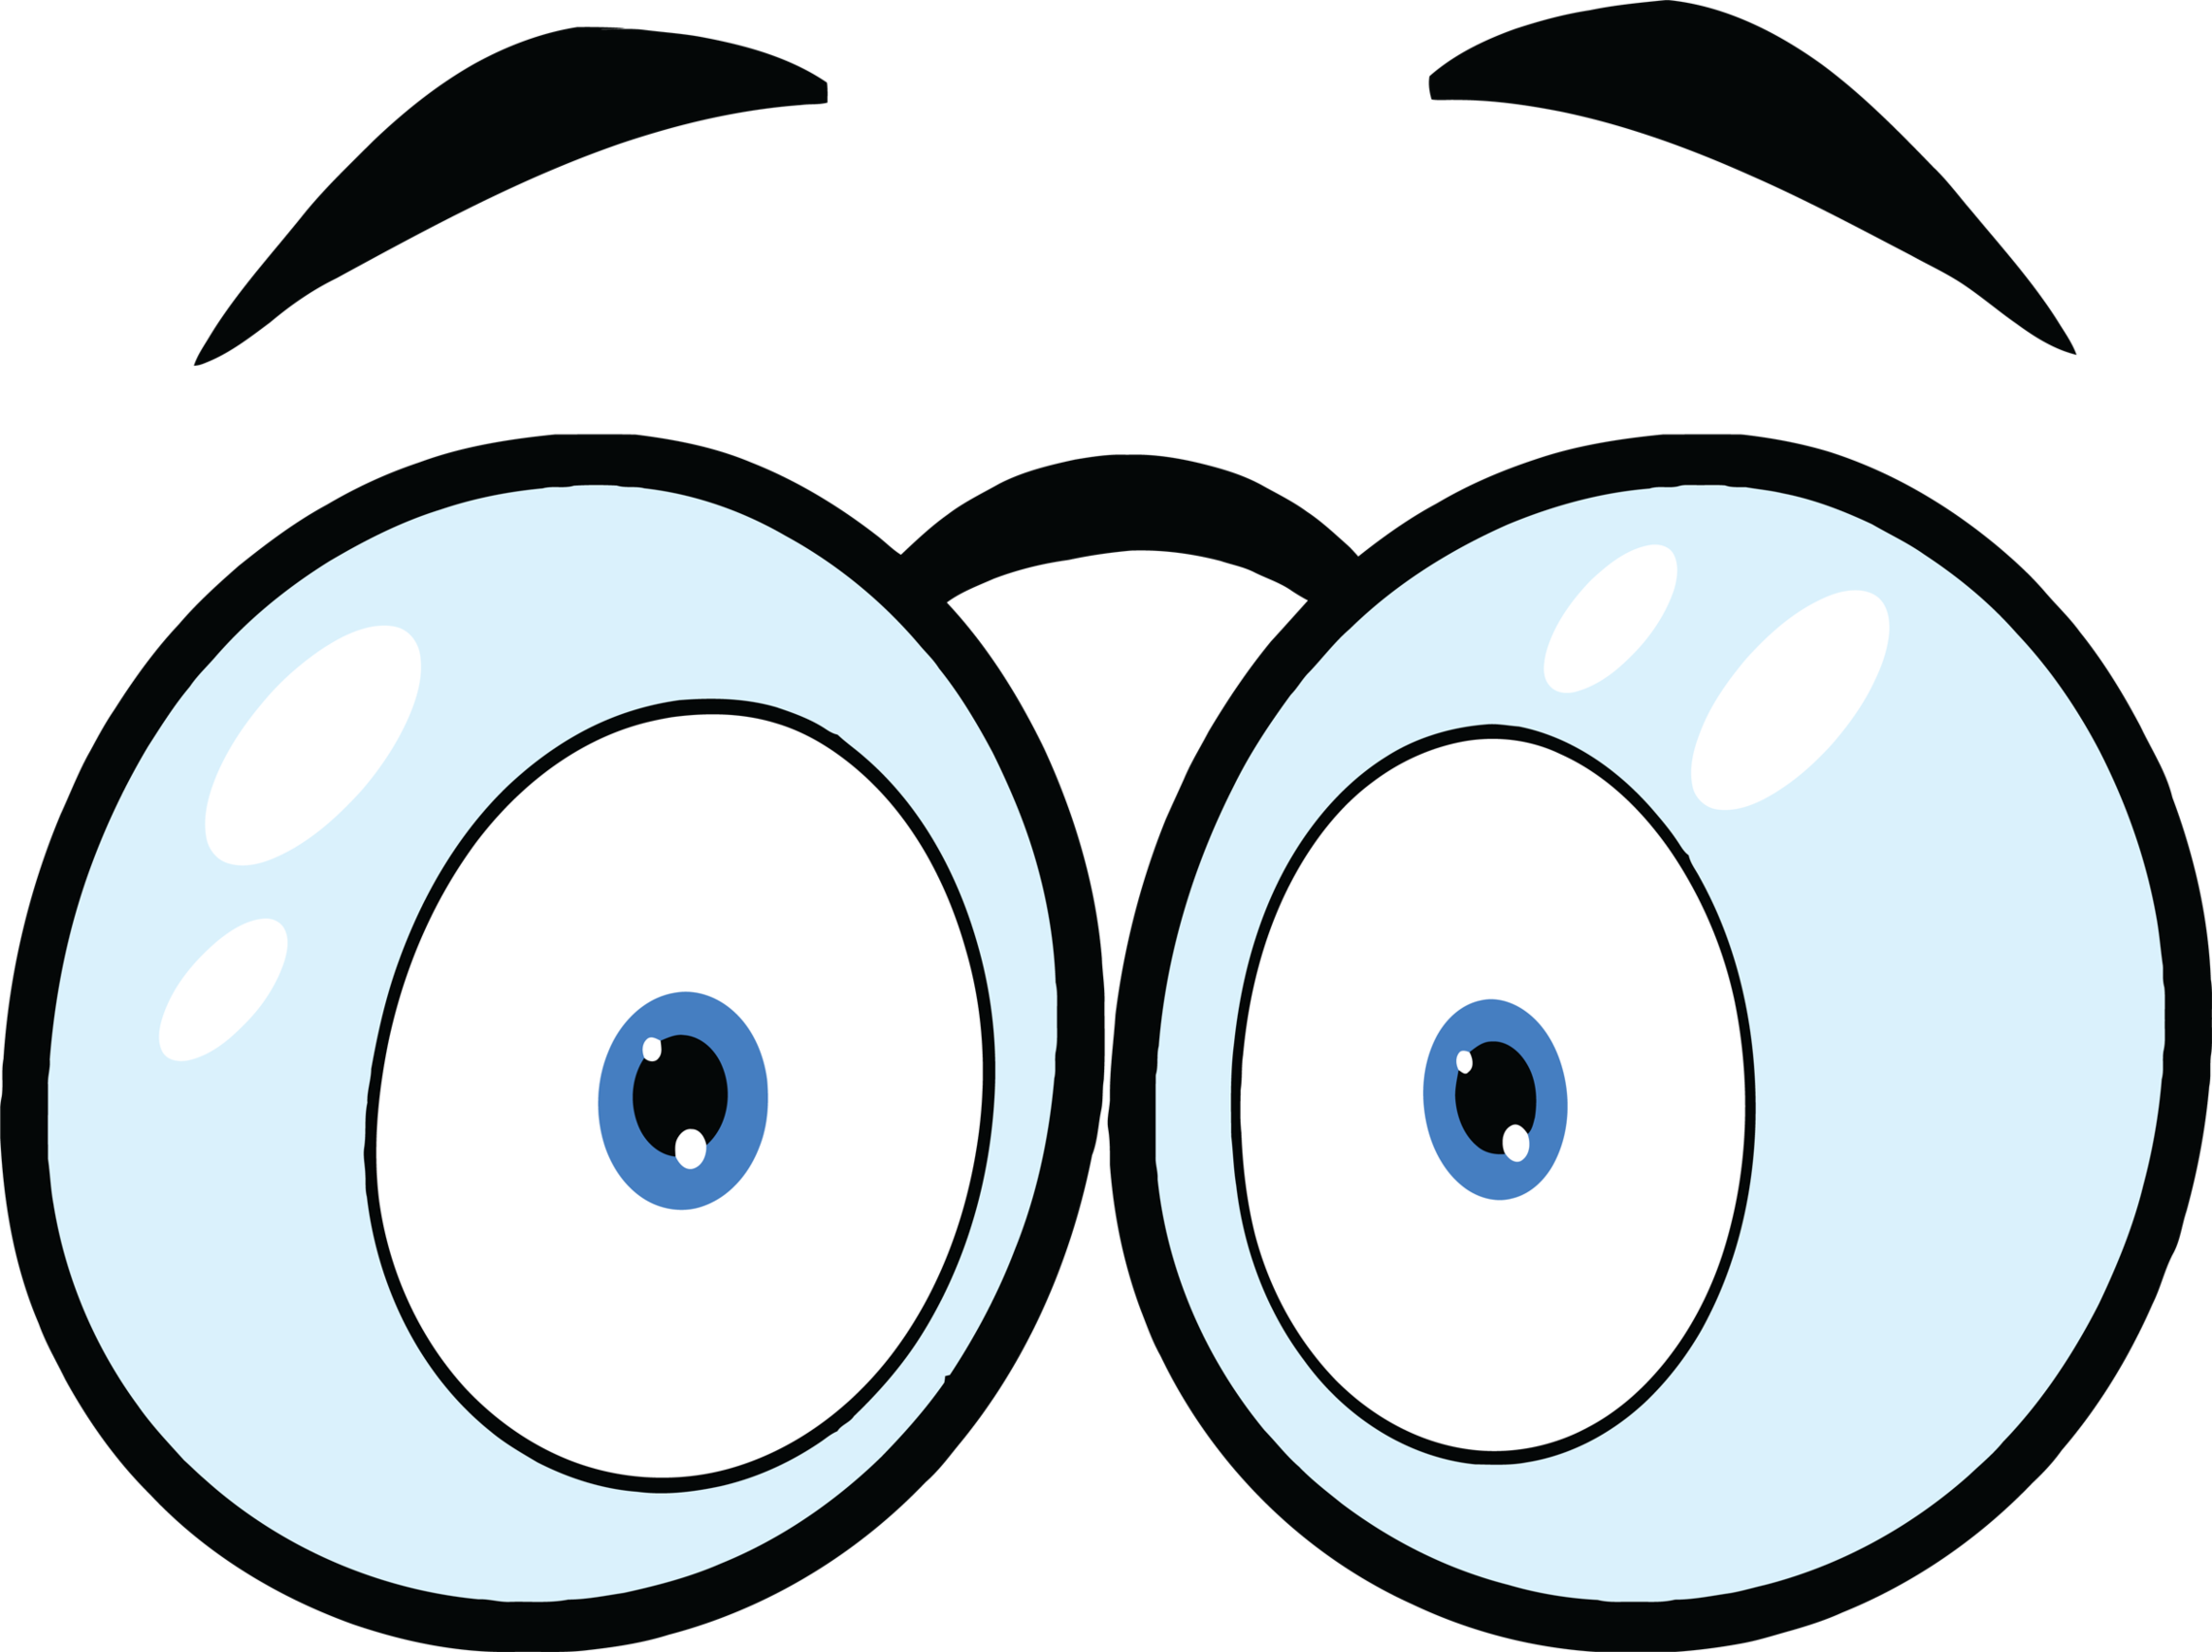 Of eyes collection eyebrow. Square clipart animated